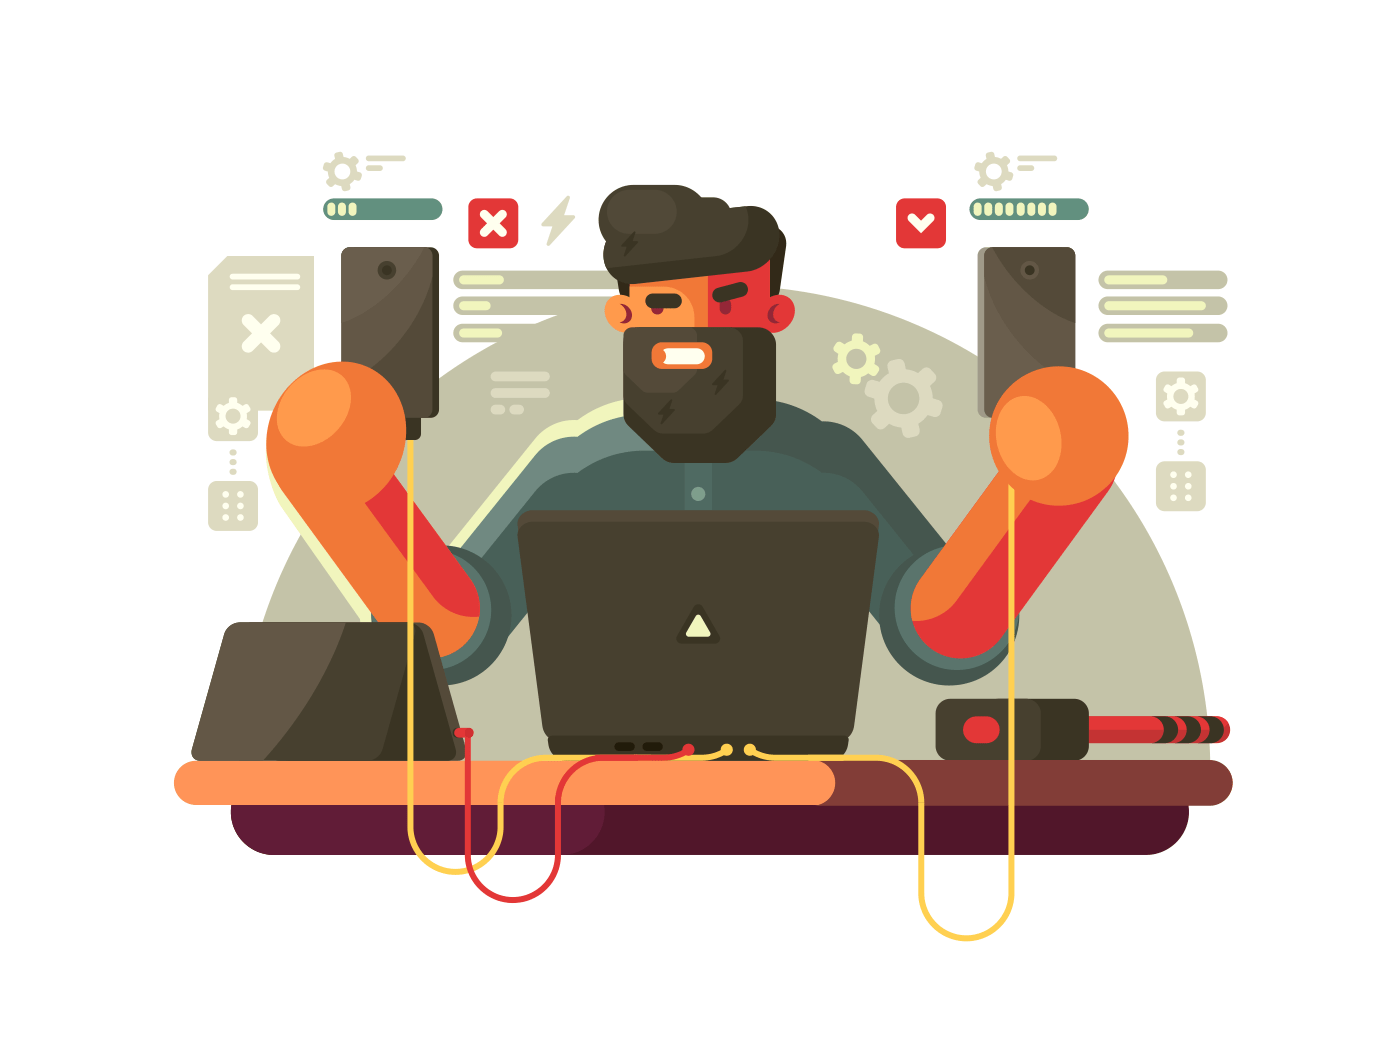 Developer of mobile phones illustration